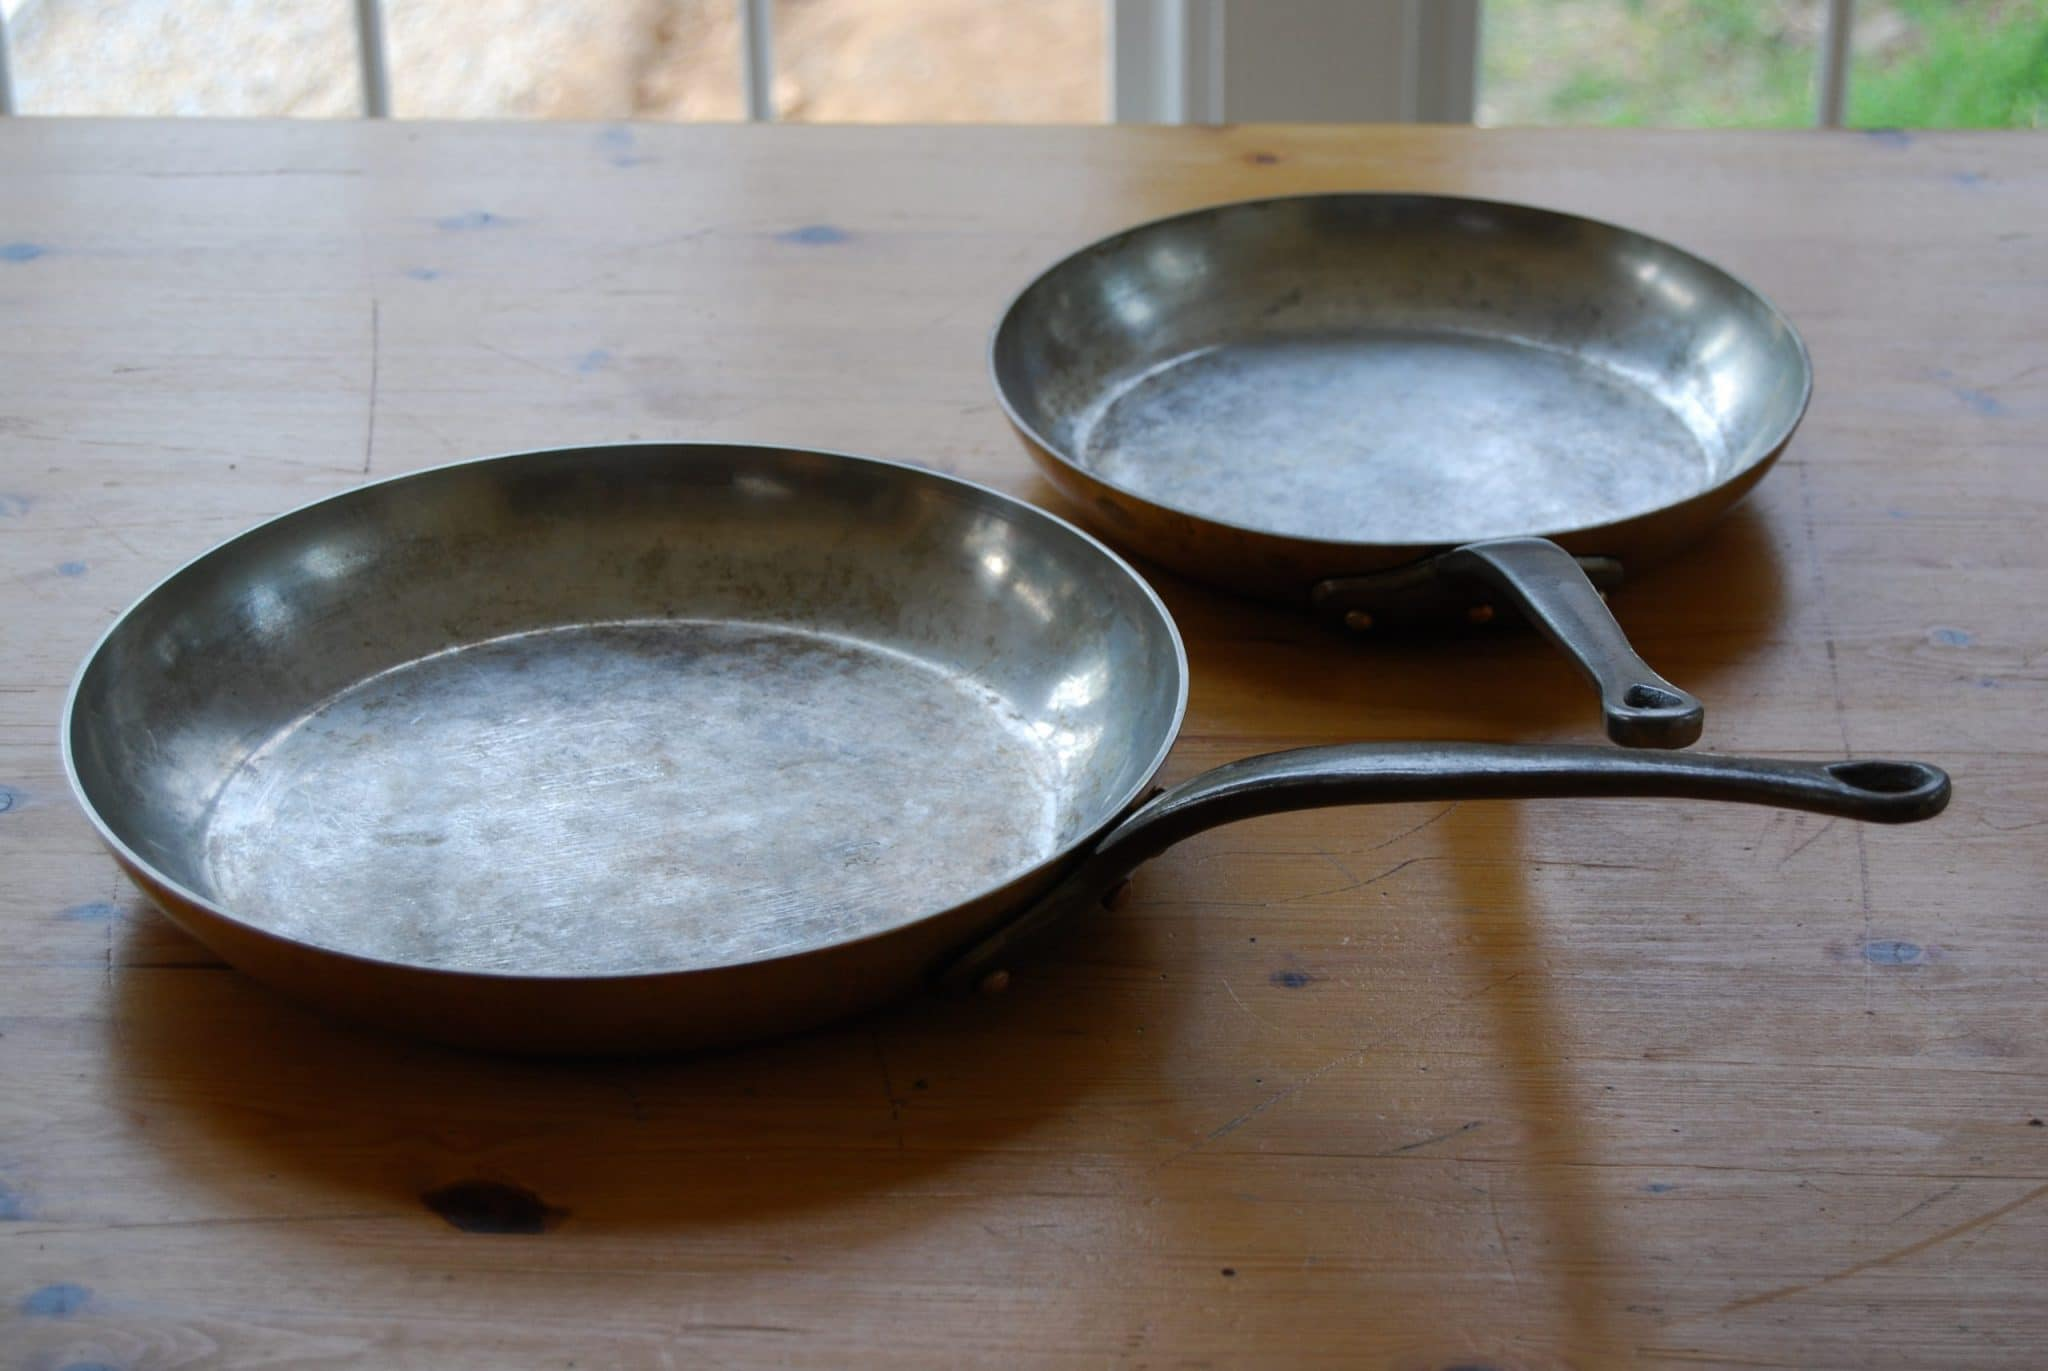 26cm and 31cm Mauviel skillets